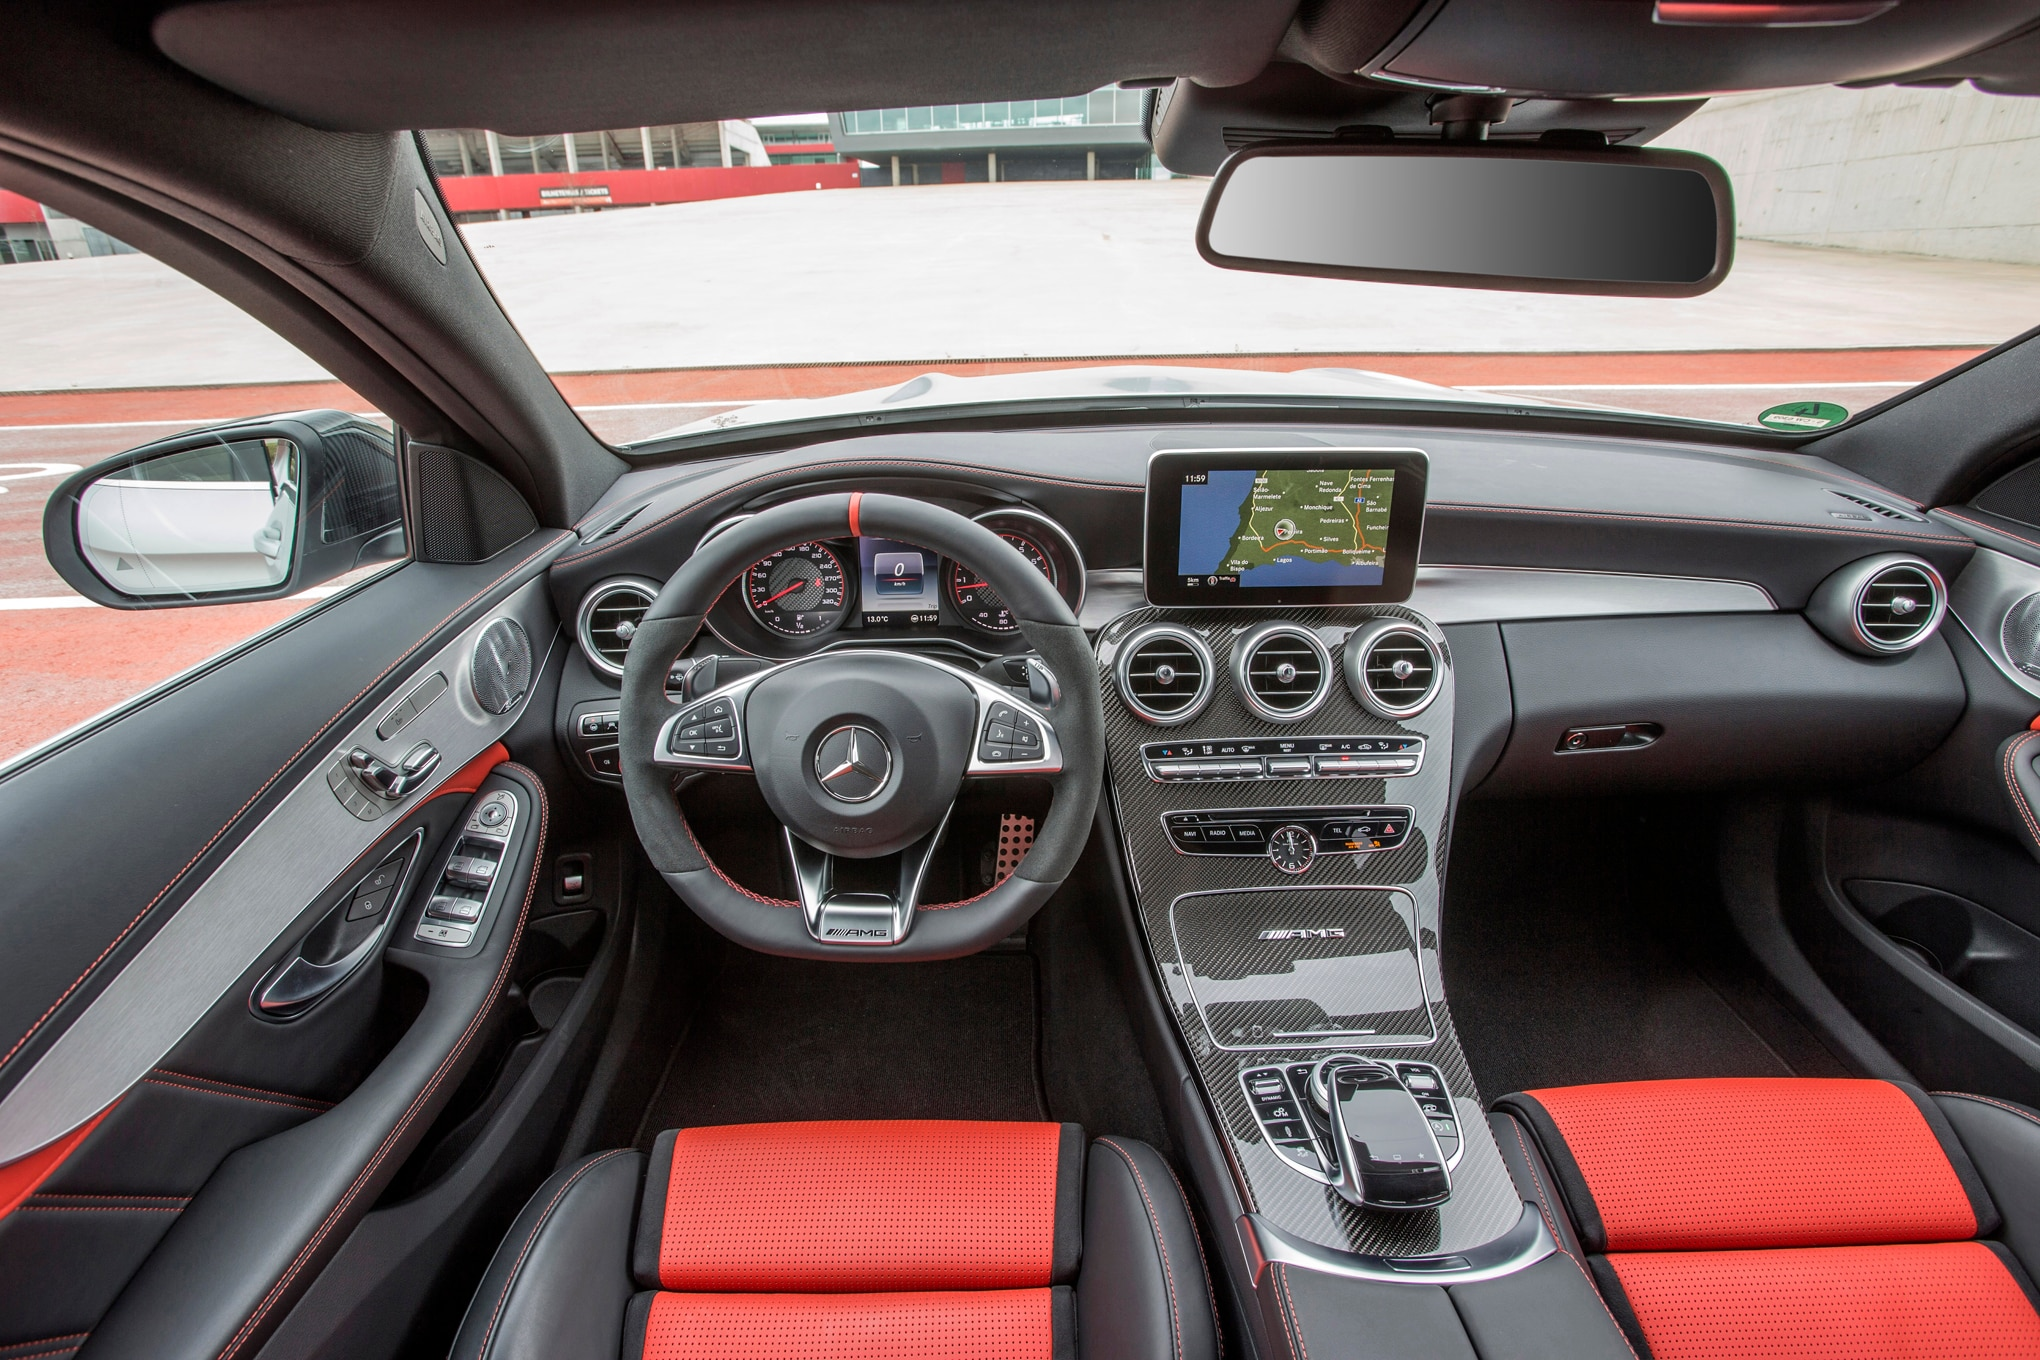 mercedes c63 amg interior 2015 images. Black Bedroom Furniture Sets. Home Design Ideas